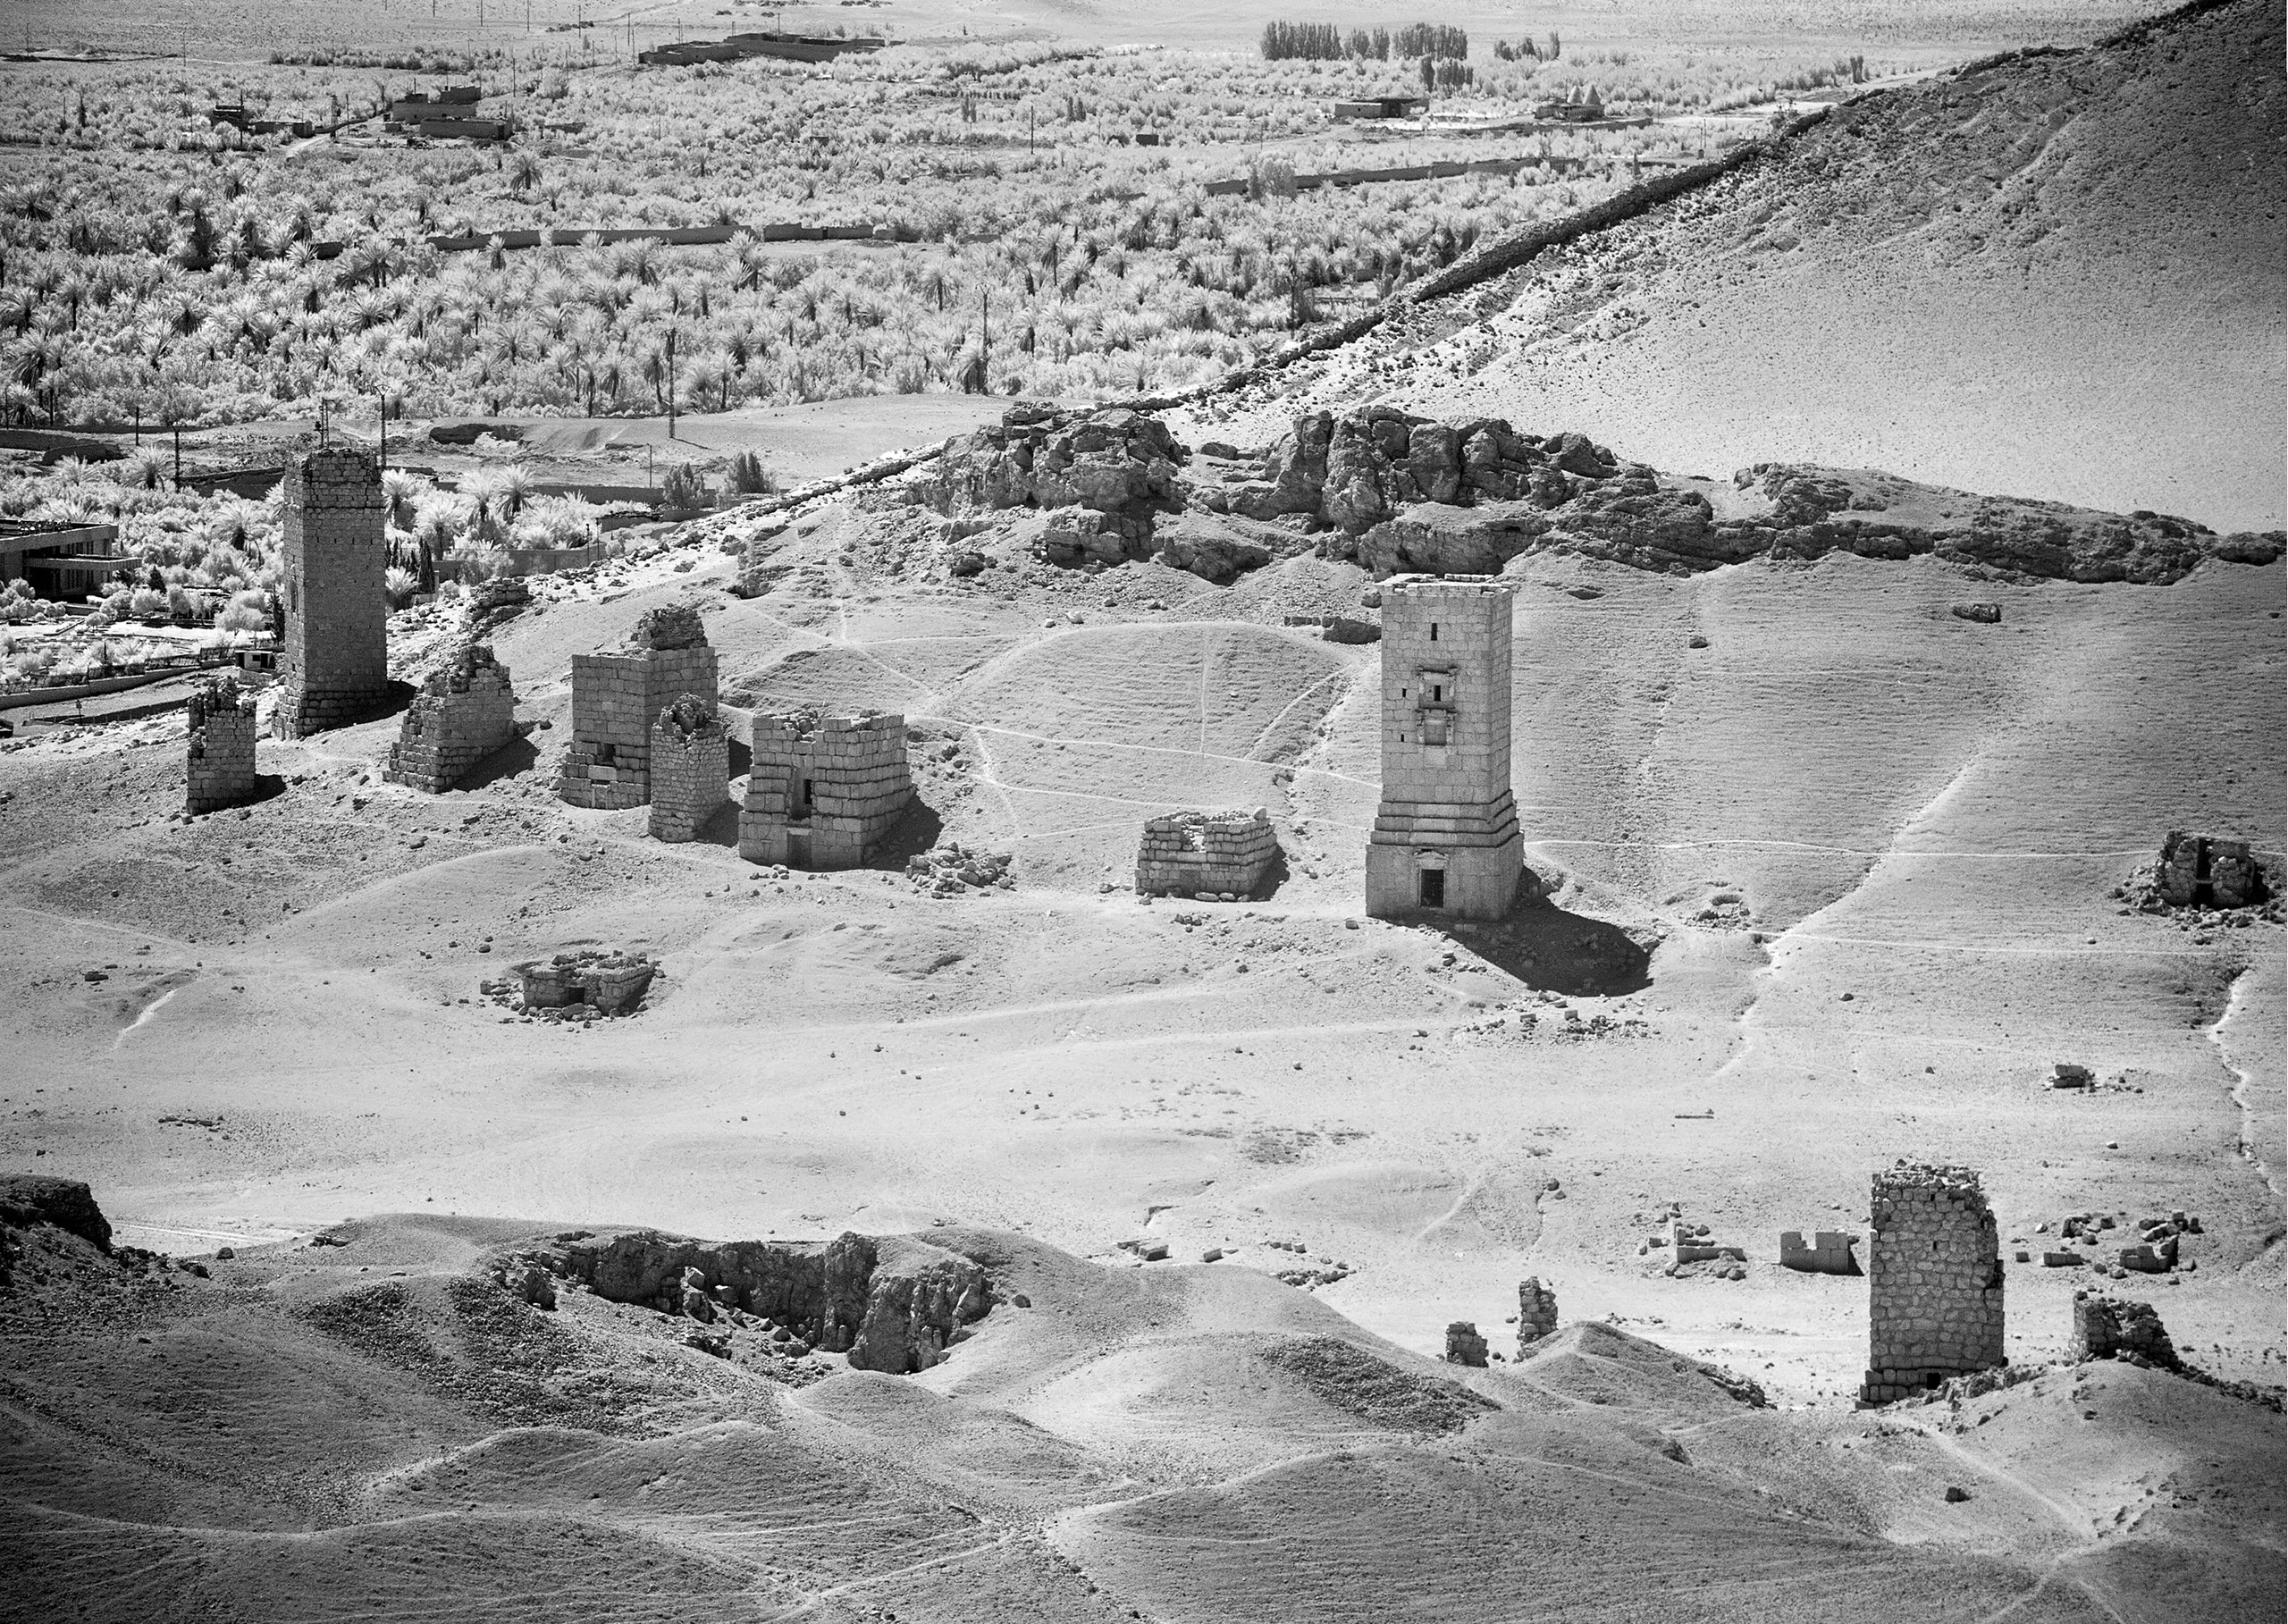 The Valley of the Tombs in Palmyra contains numerous tower tombs mostly dating from the first century AD.